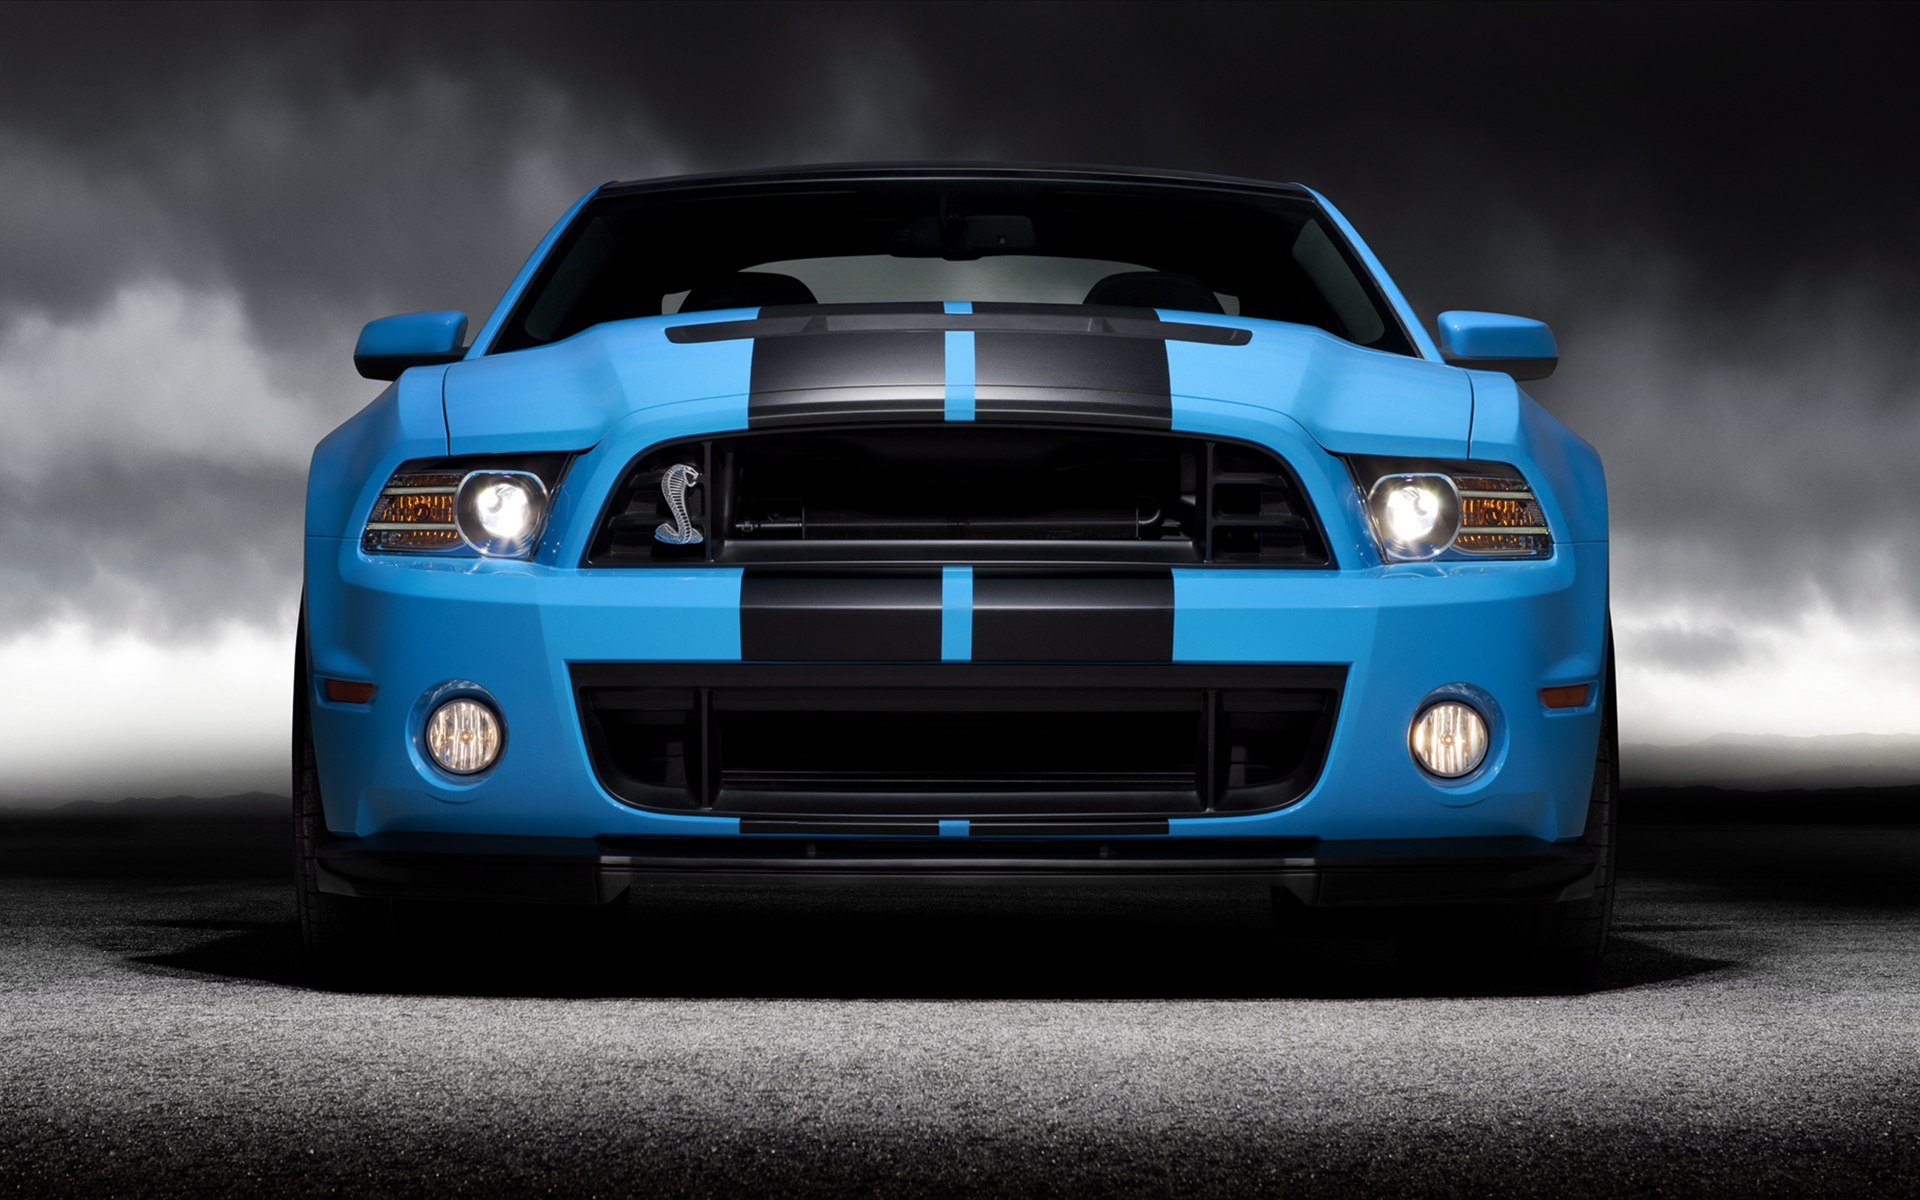 Ford Shelby GT500 2013 Wallpaper HD Car Wallpapers 1920x1200